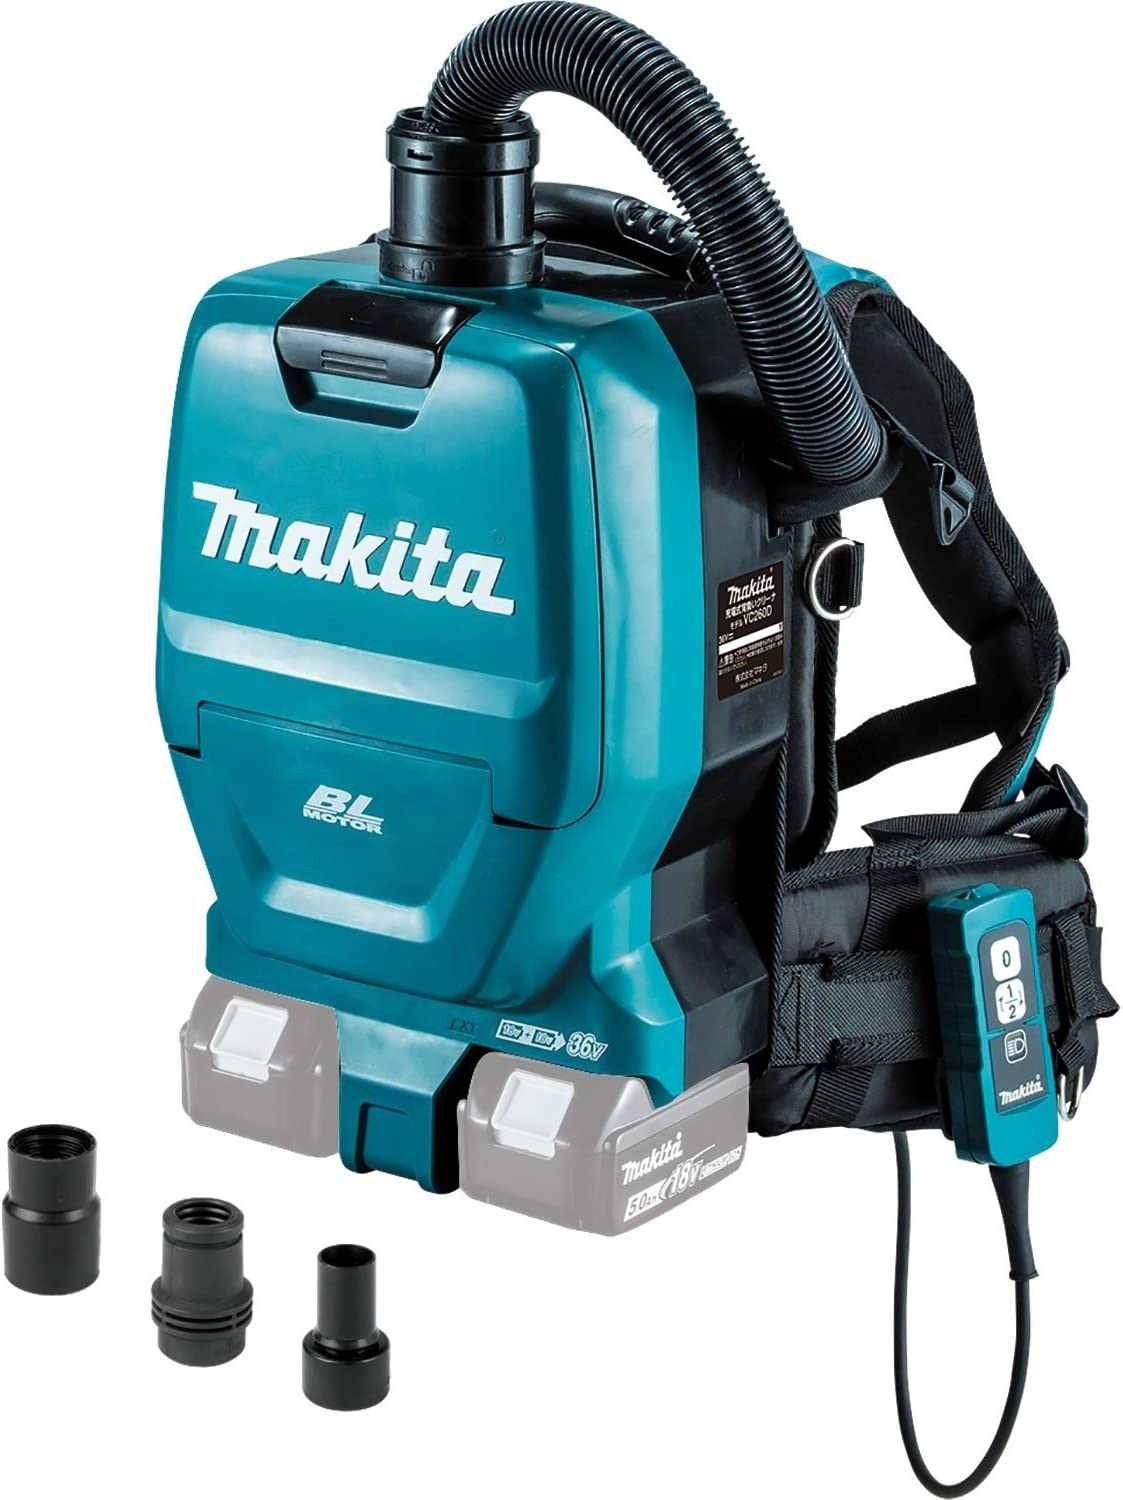 Makita XCV05ZX 8V X2 LXT Lithium-Ion 36C Brushless Cordless 1/2 gallon HEPA Filter Backpack Dry Vacuum with Tool Adapters, Tool Only